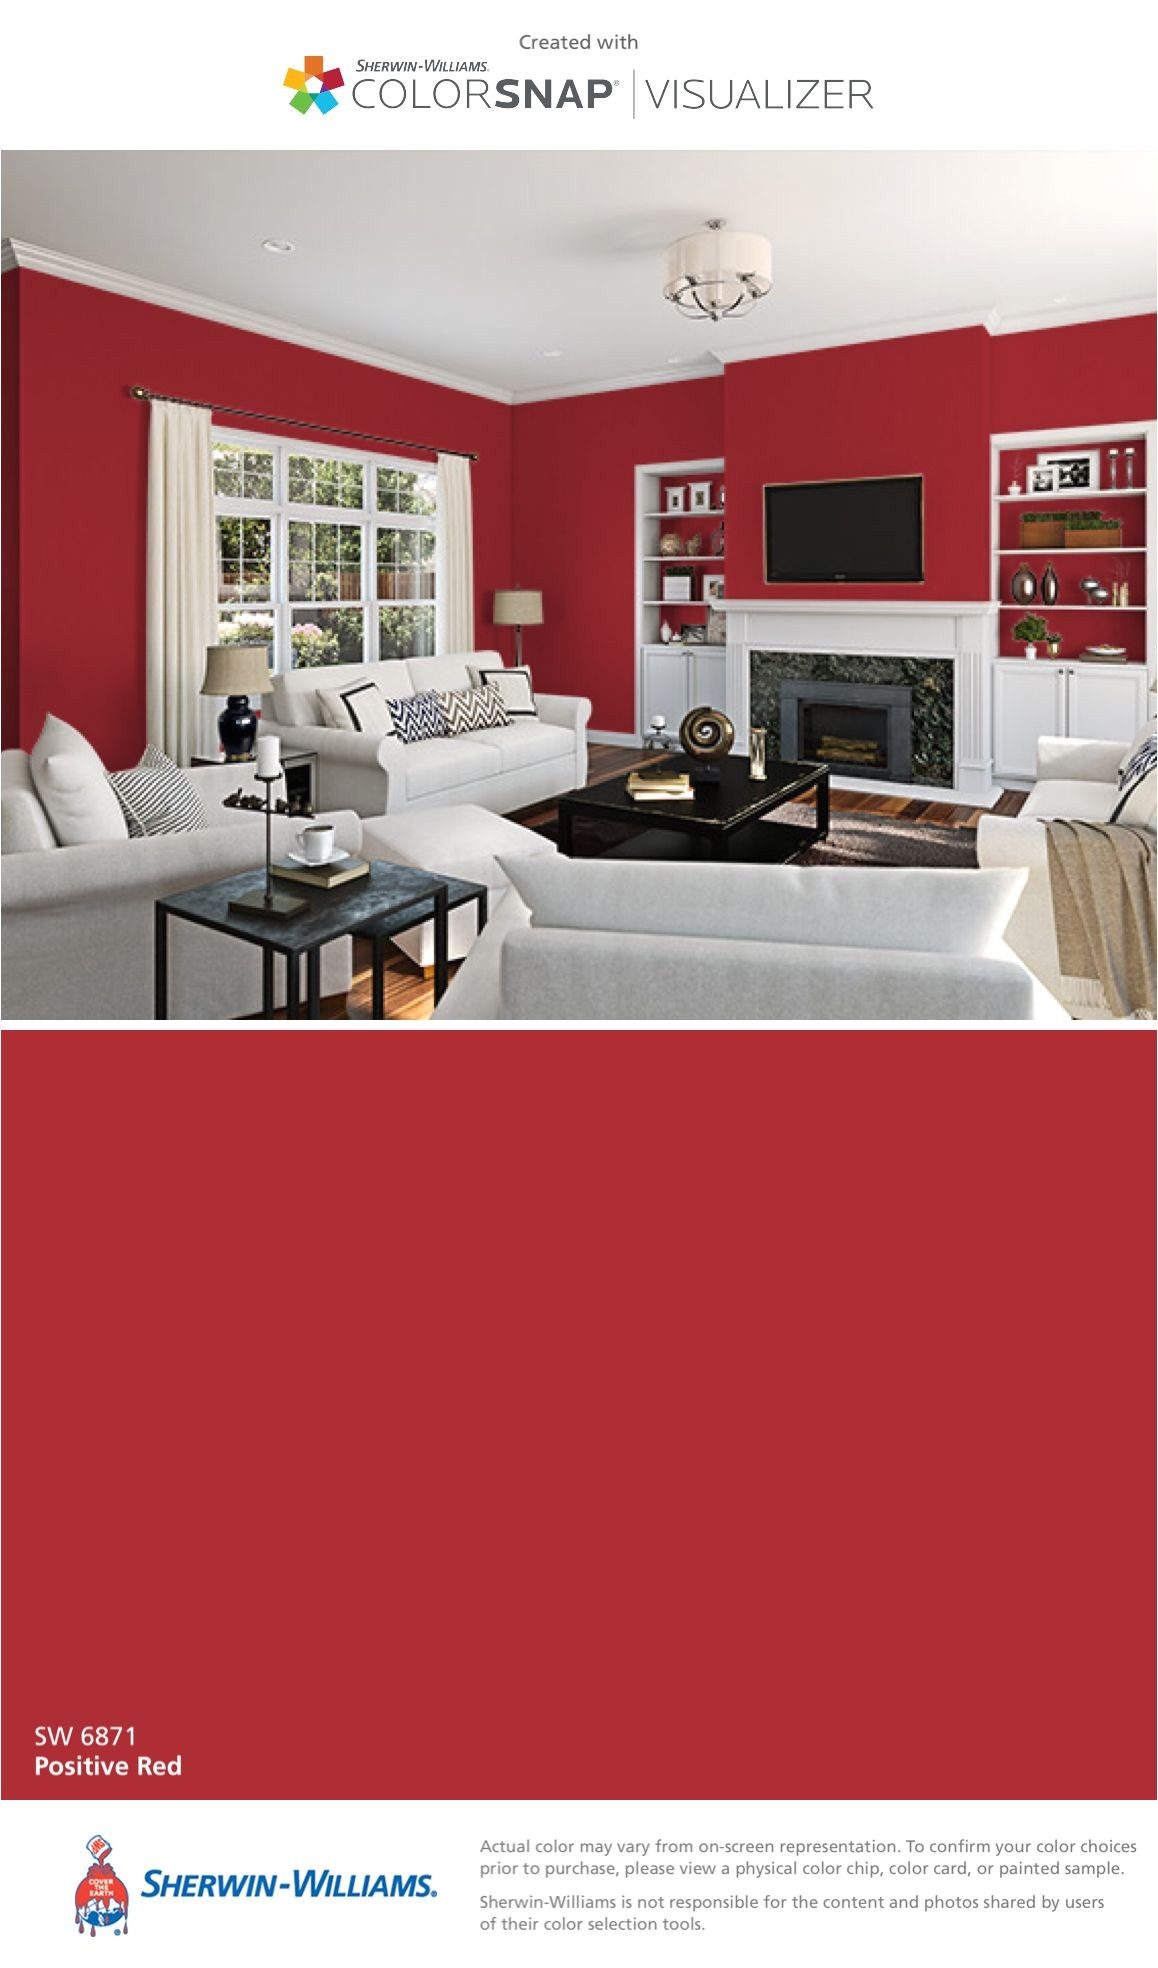 i found this color with colorsnapa visualizer for iphone by sherwin williams positive red sw 6871